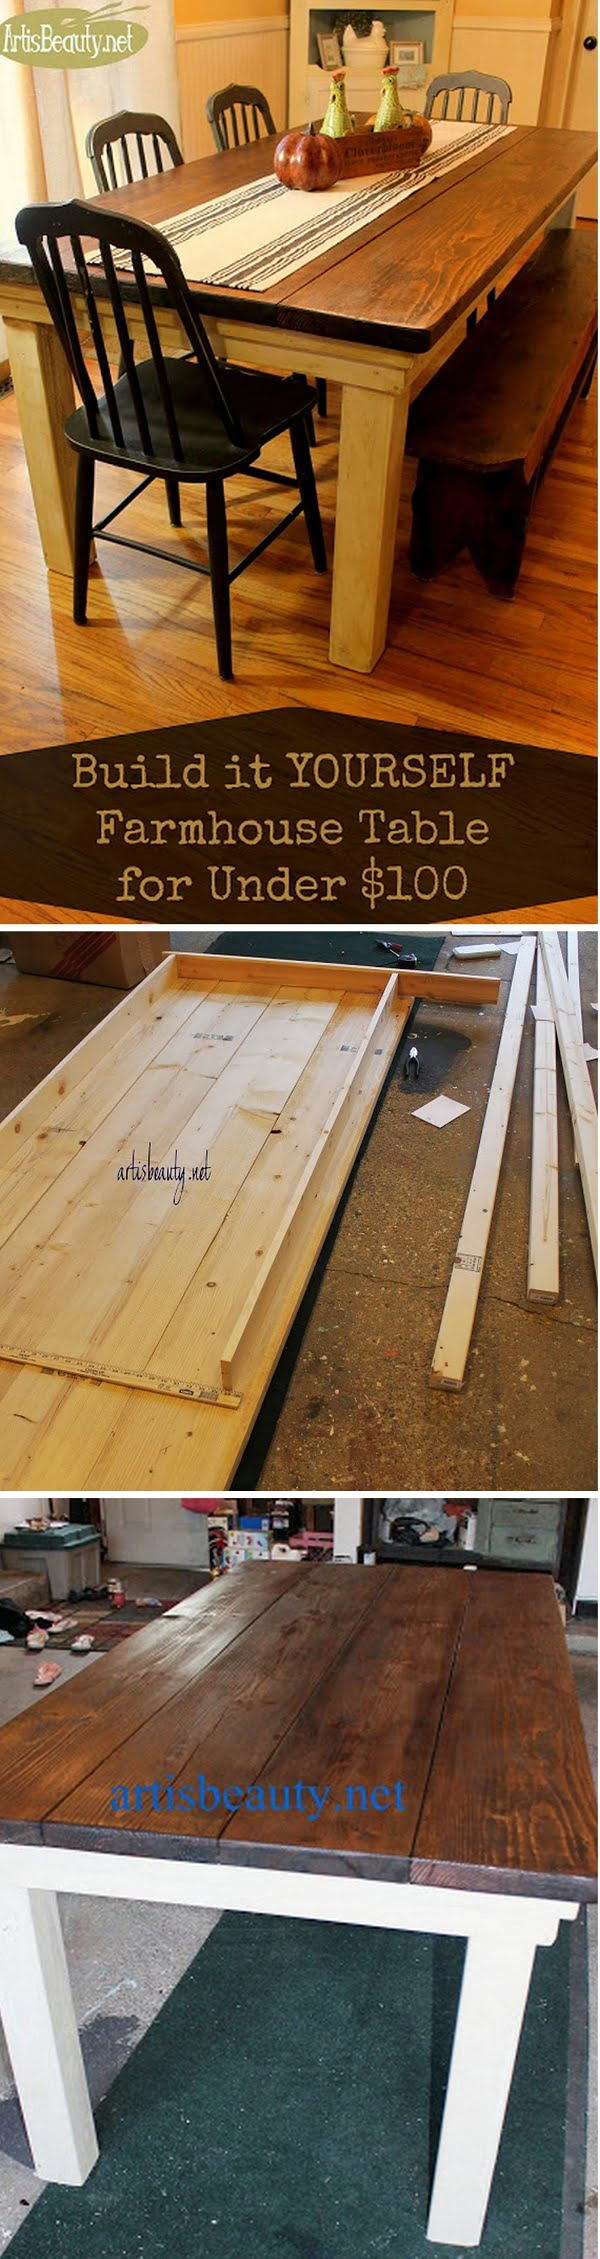 Check out the tutorial how to build a DIY farmhouse dining table for under $100